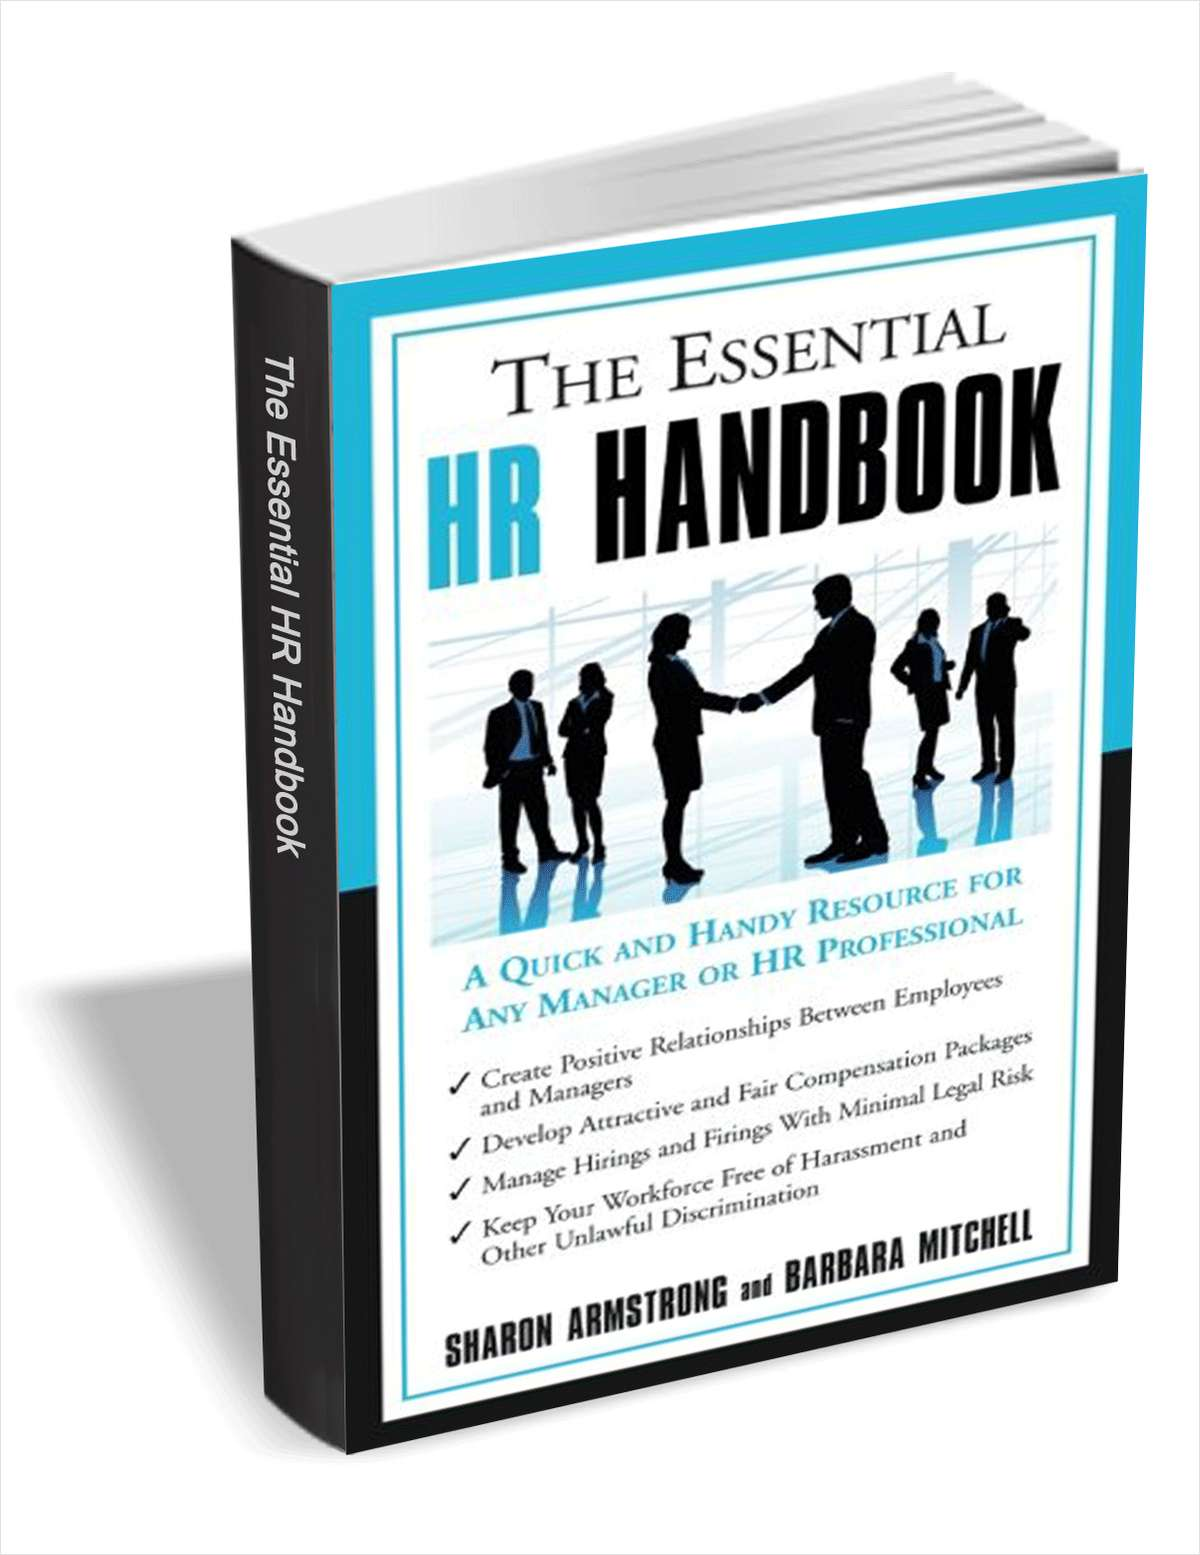 The Essential HR Handbook ($9 Value) FREE For a Limited Time